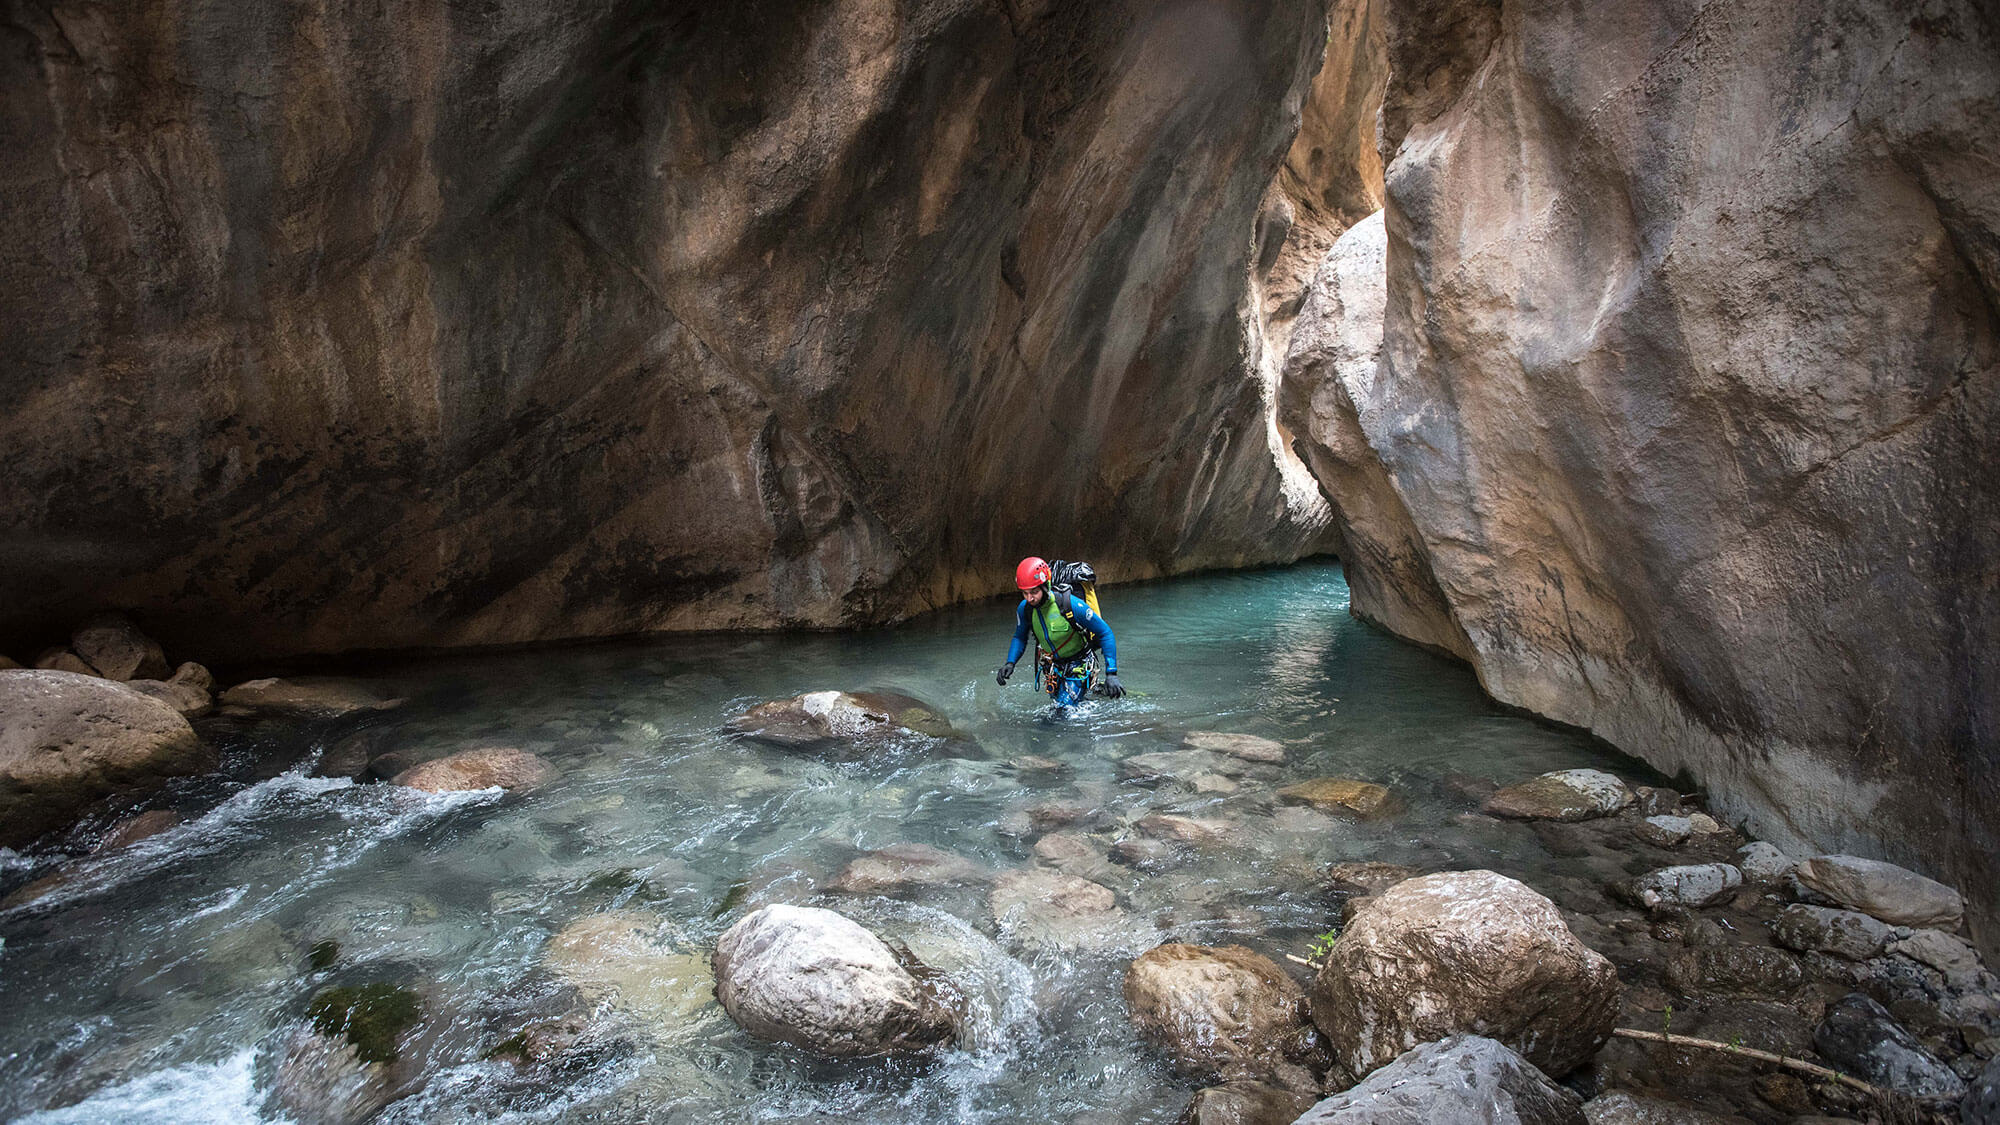 Iranian Canyoneer Mohammed Chavoshi exiting a limestone gorge at the Ziv Davand canyon